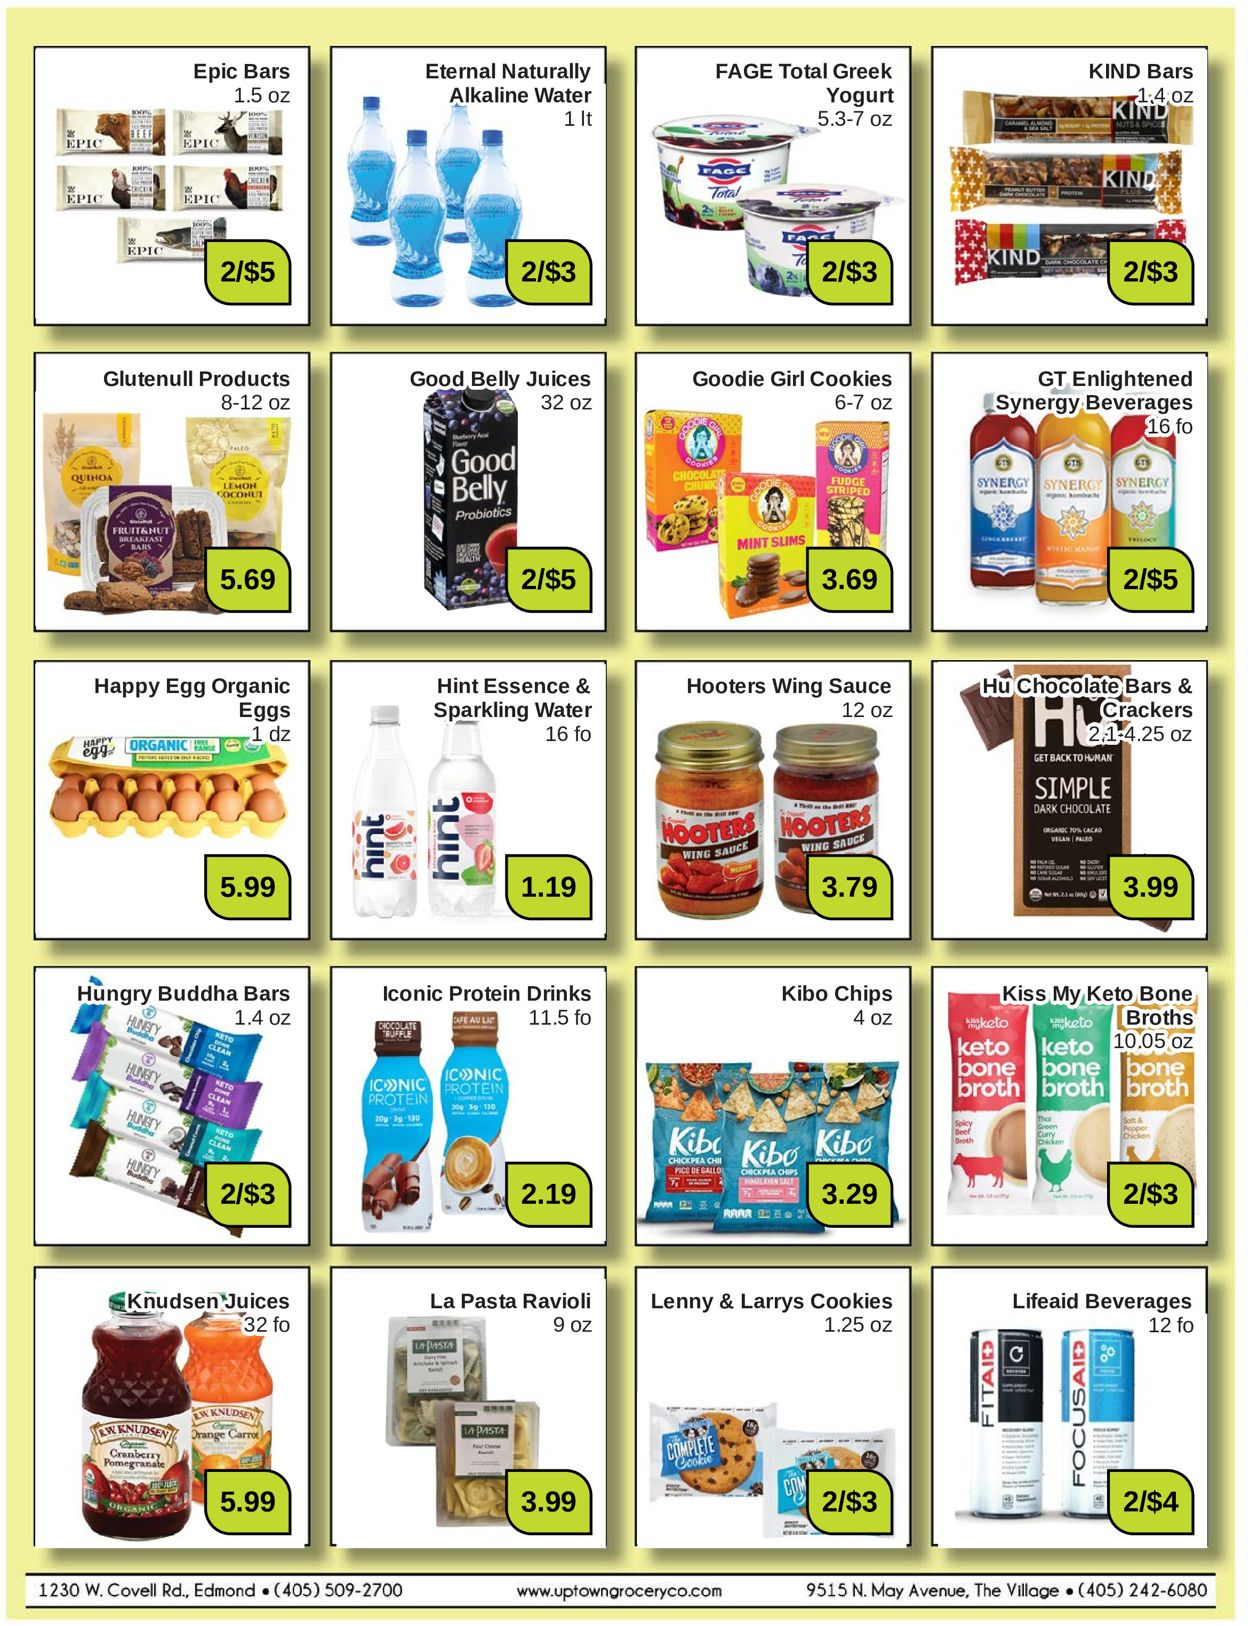 Uptown Grocery Co. Weekly Ad Circular - valid 12/27-01/30/2022 (Page 2)